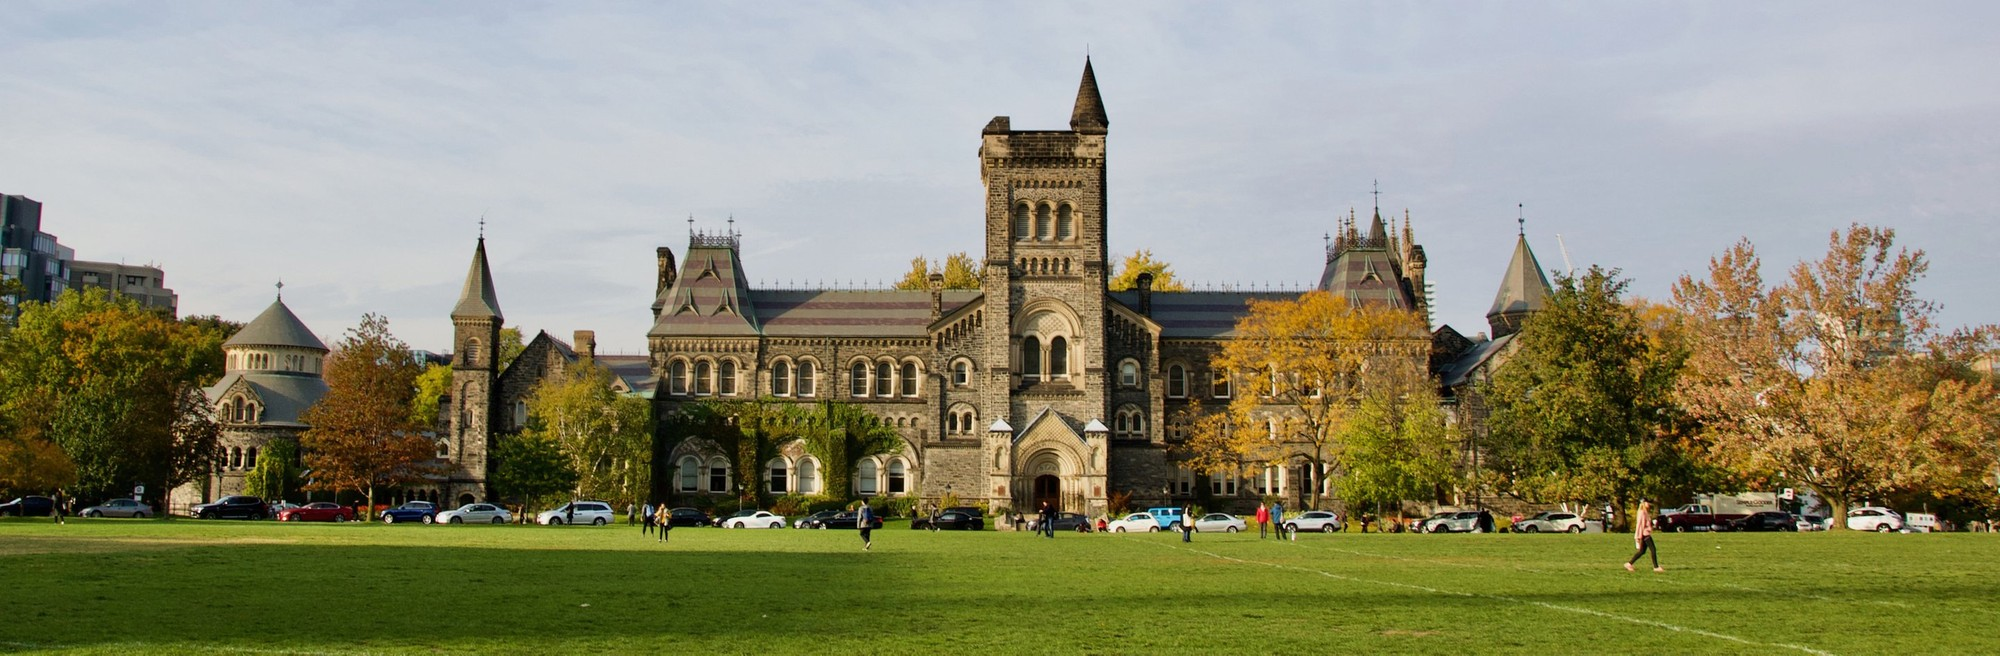 Quad and campus on a sunny day at the University of Toronto